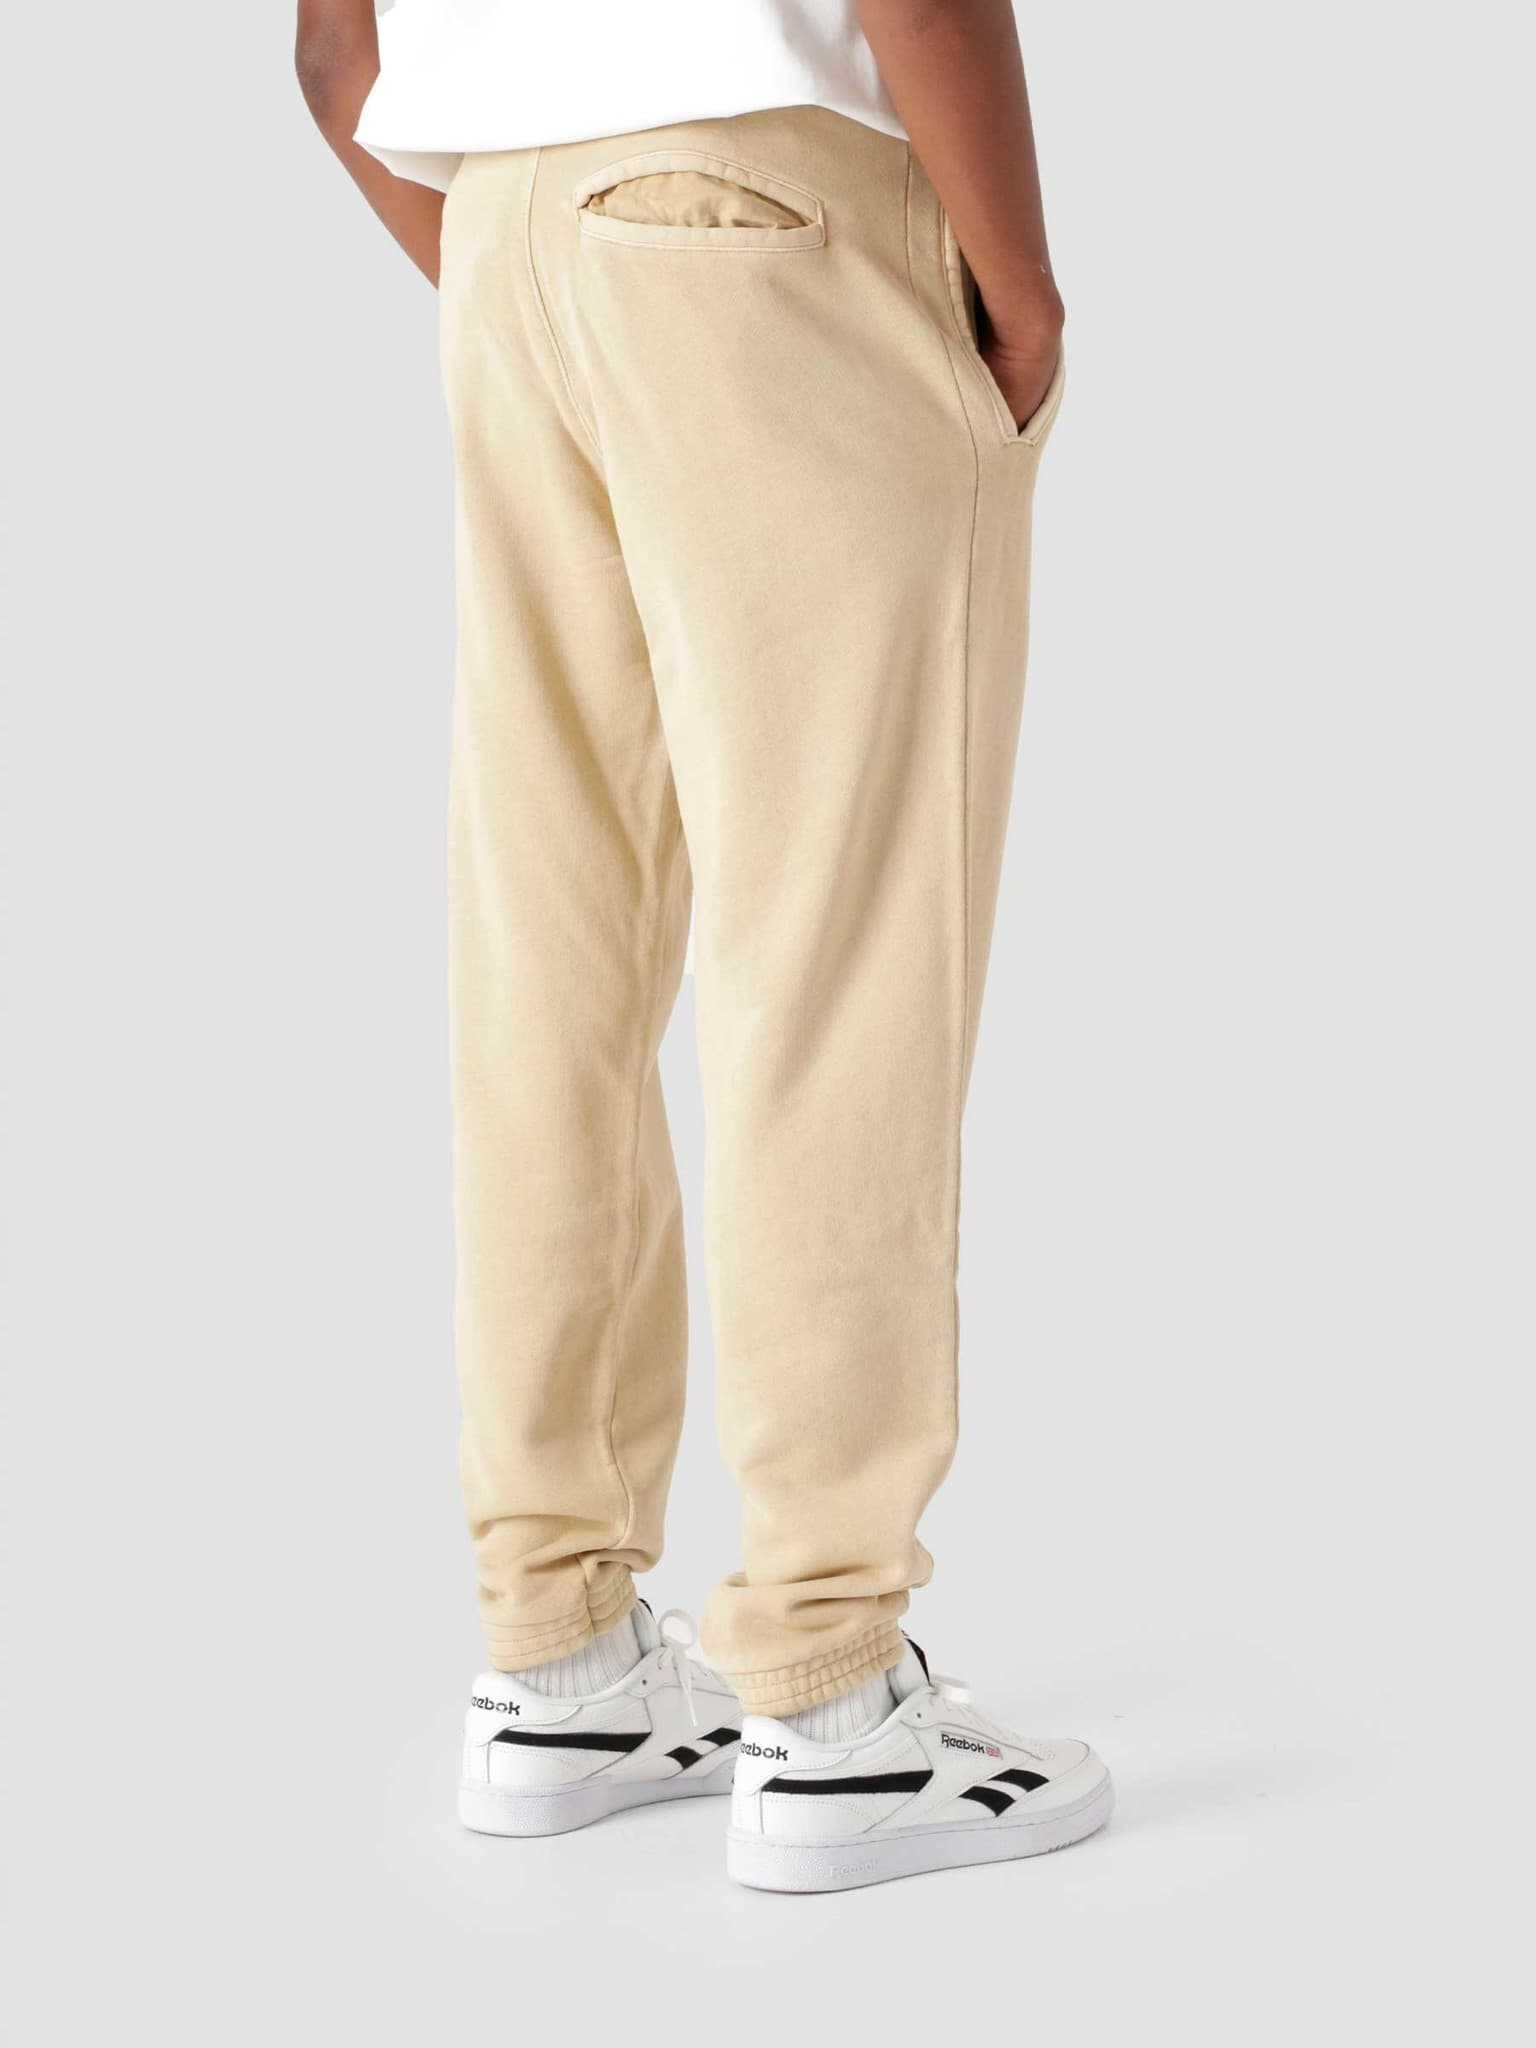 CL Nd Pant Sepia GV3472